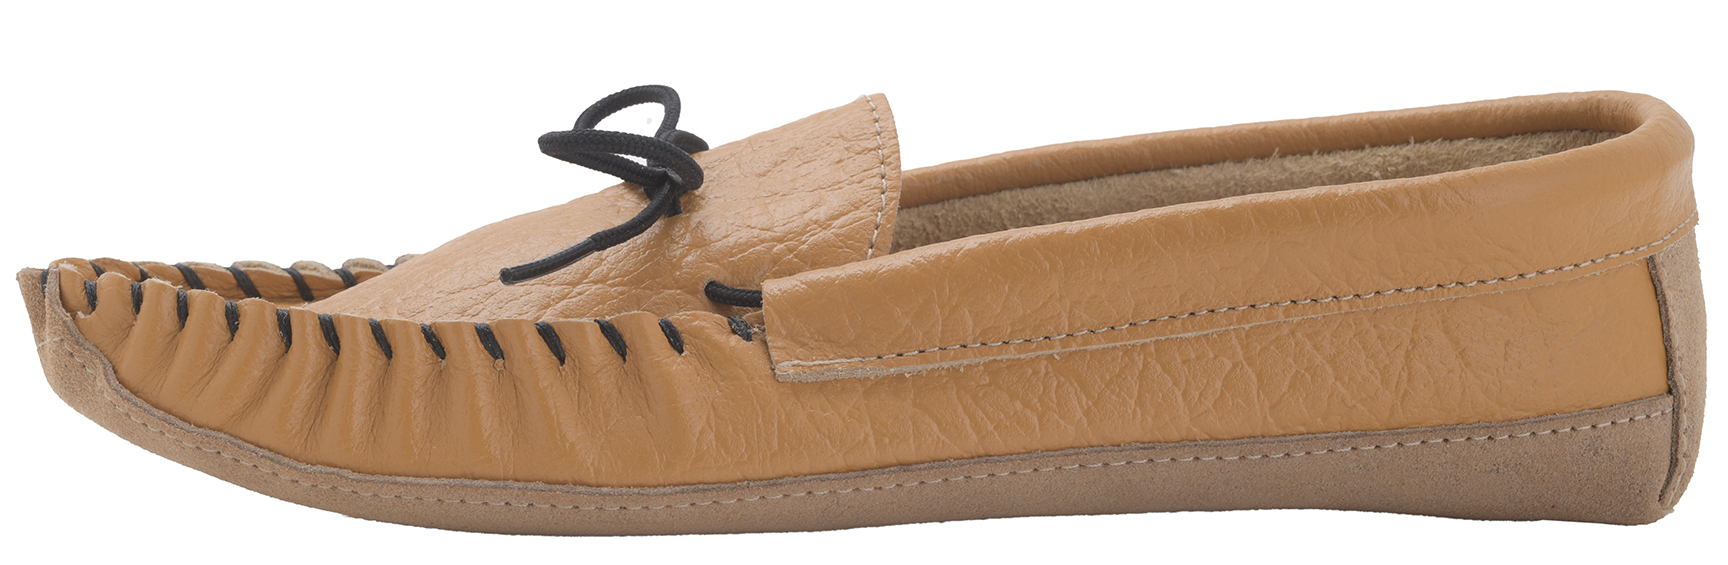 Leather-Earthing-Grounding-Moccasin-Slippers-Made-in-the-UK-Mens-amp-Ladies thumbnail 4